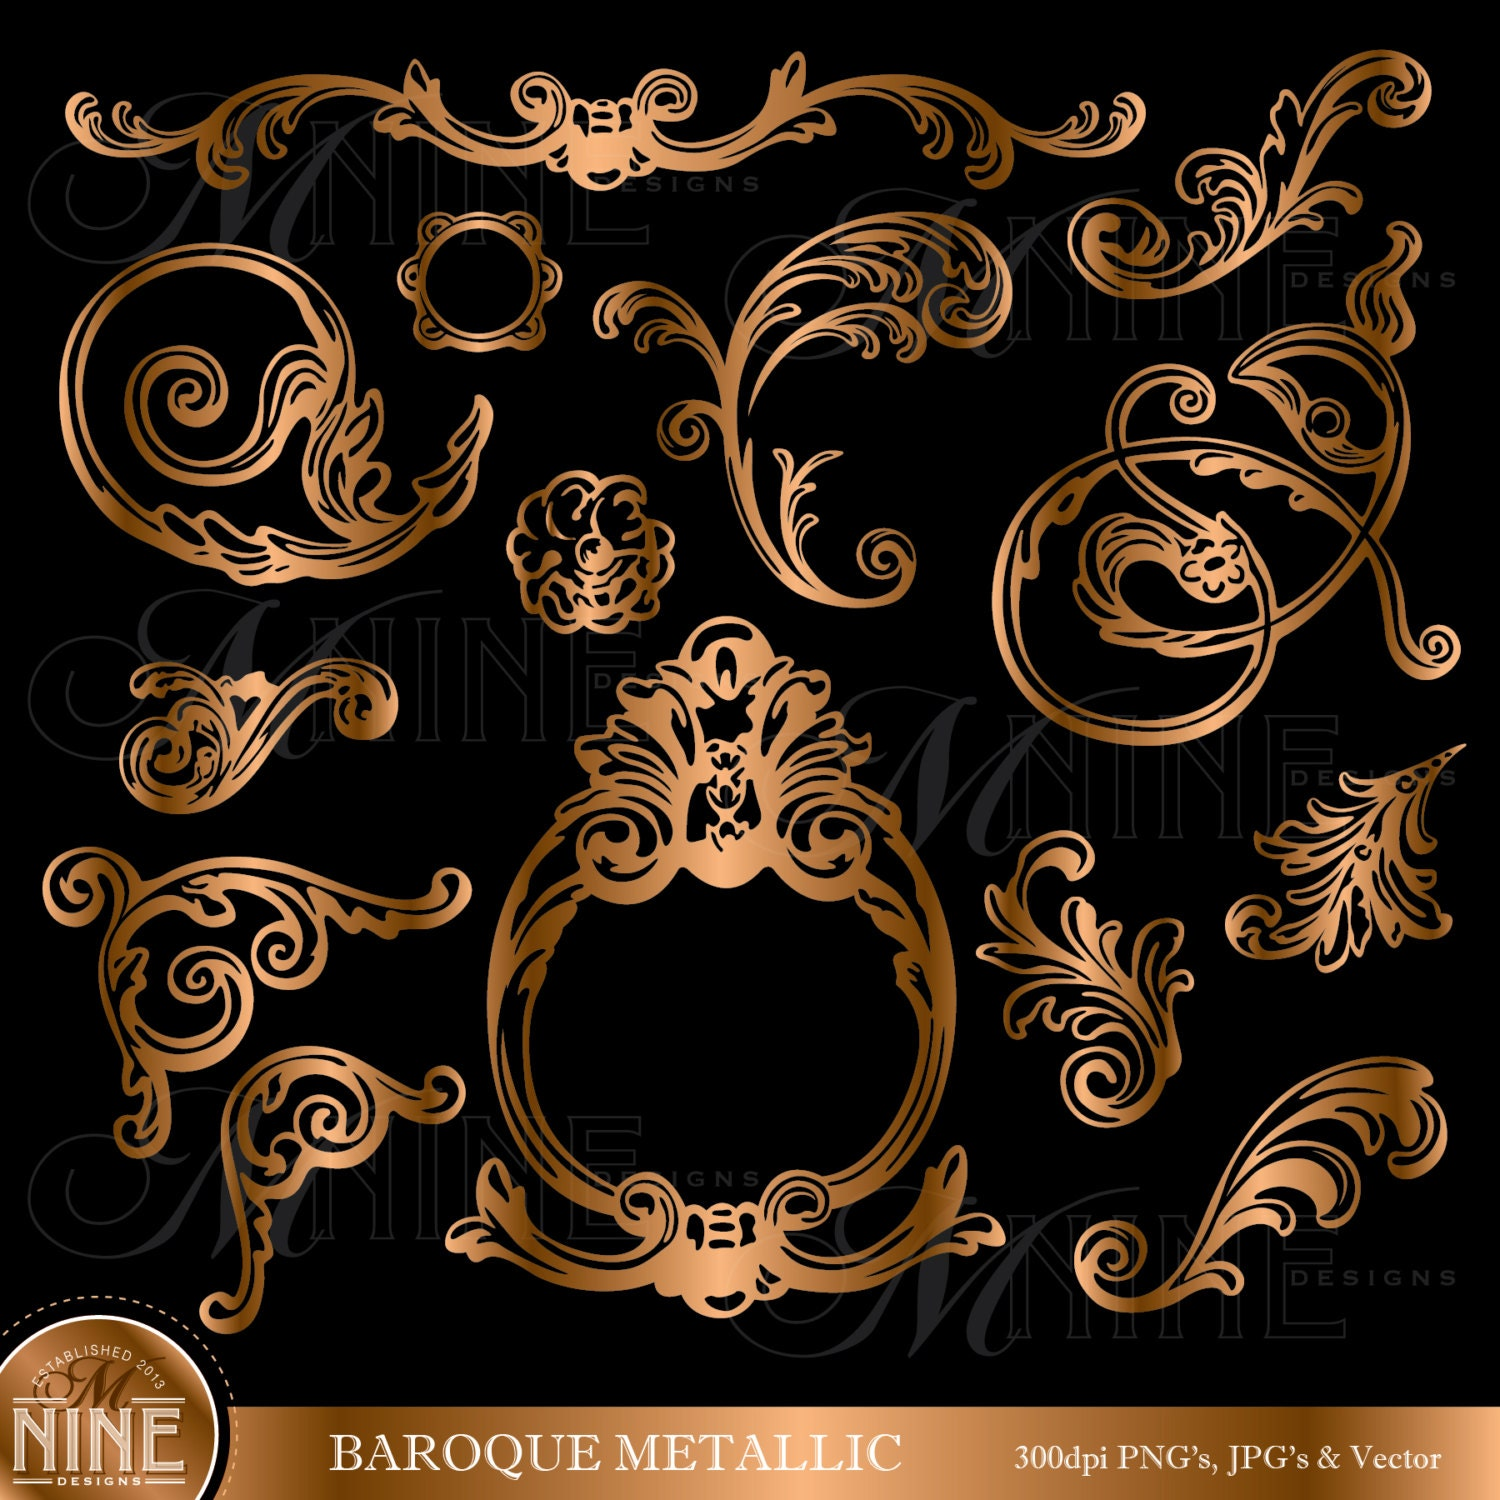 Bronze baroque design elements clipart instant download for Baroque design elements